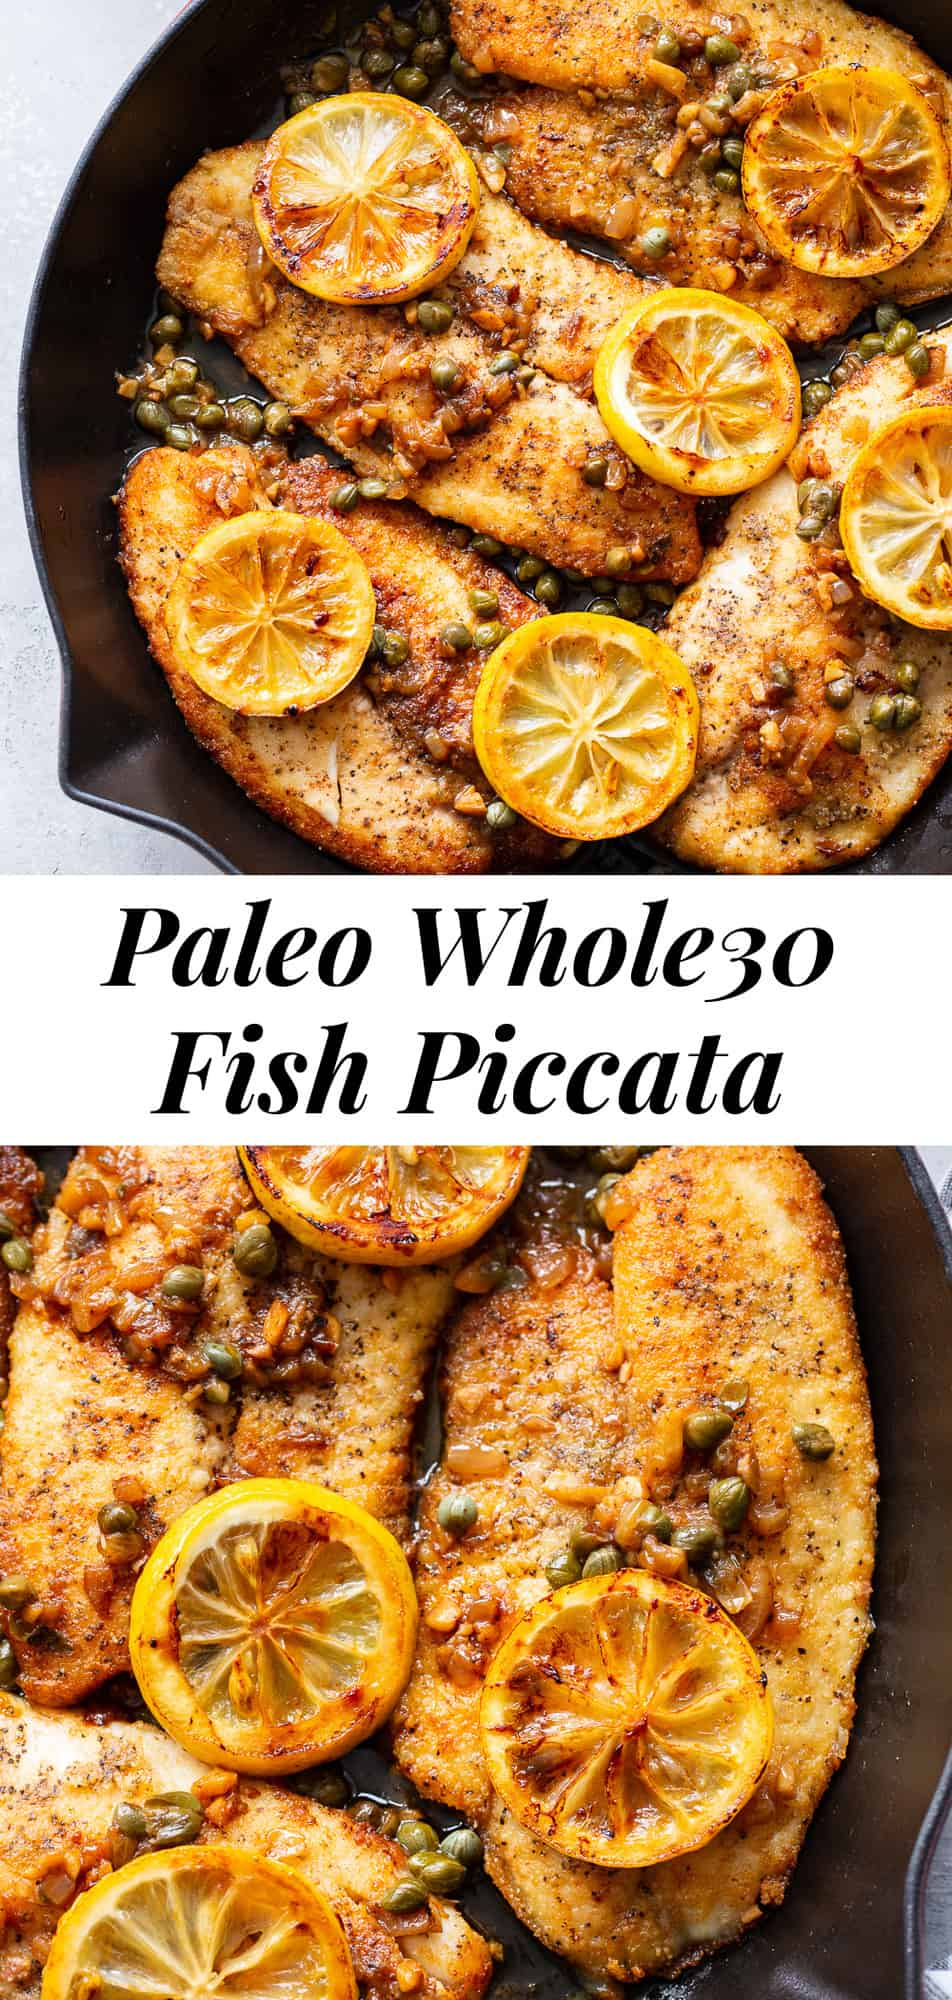 This savory one-skillet lemon fish piccata is made all in one skillet and couldn't be easier!  Perfect for weeknights and the leftovers save well for lunch the next day.  It's gluten free, paleo, Whole30 compliant and keto friendly. #whole30 #paleo #keto #cleaneating